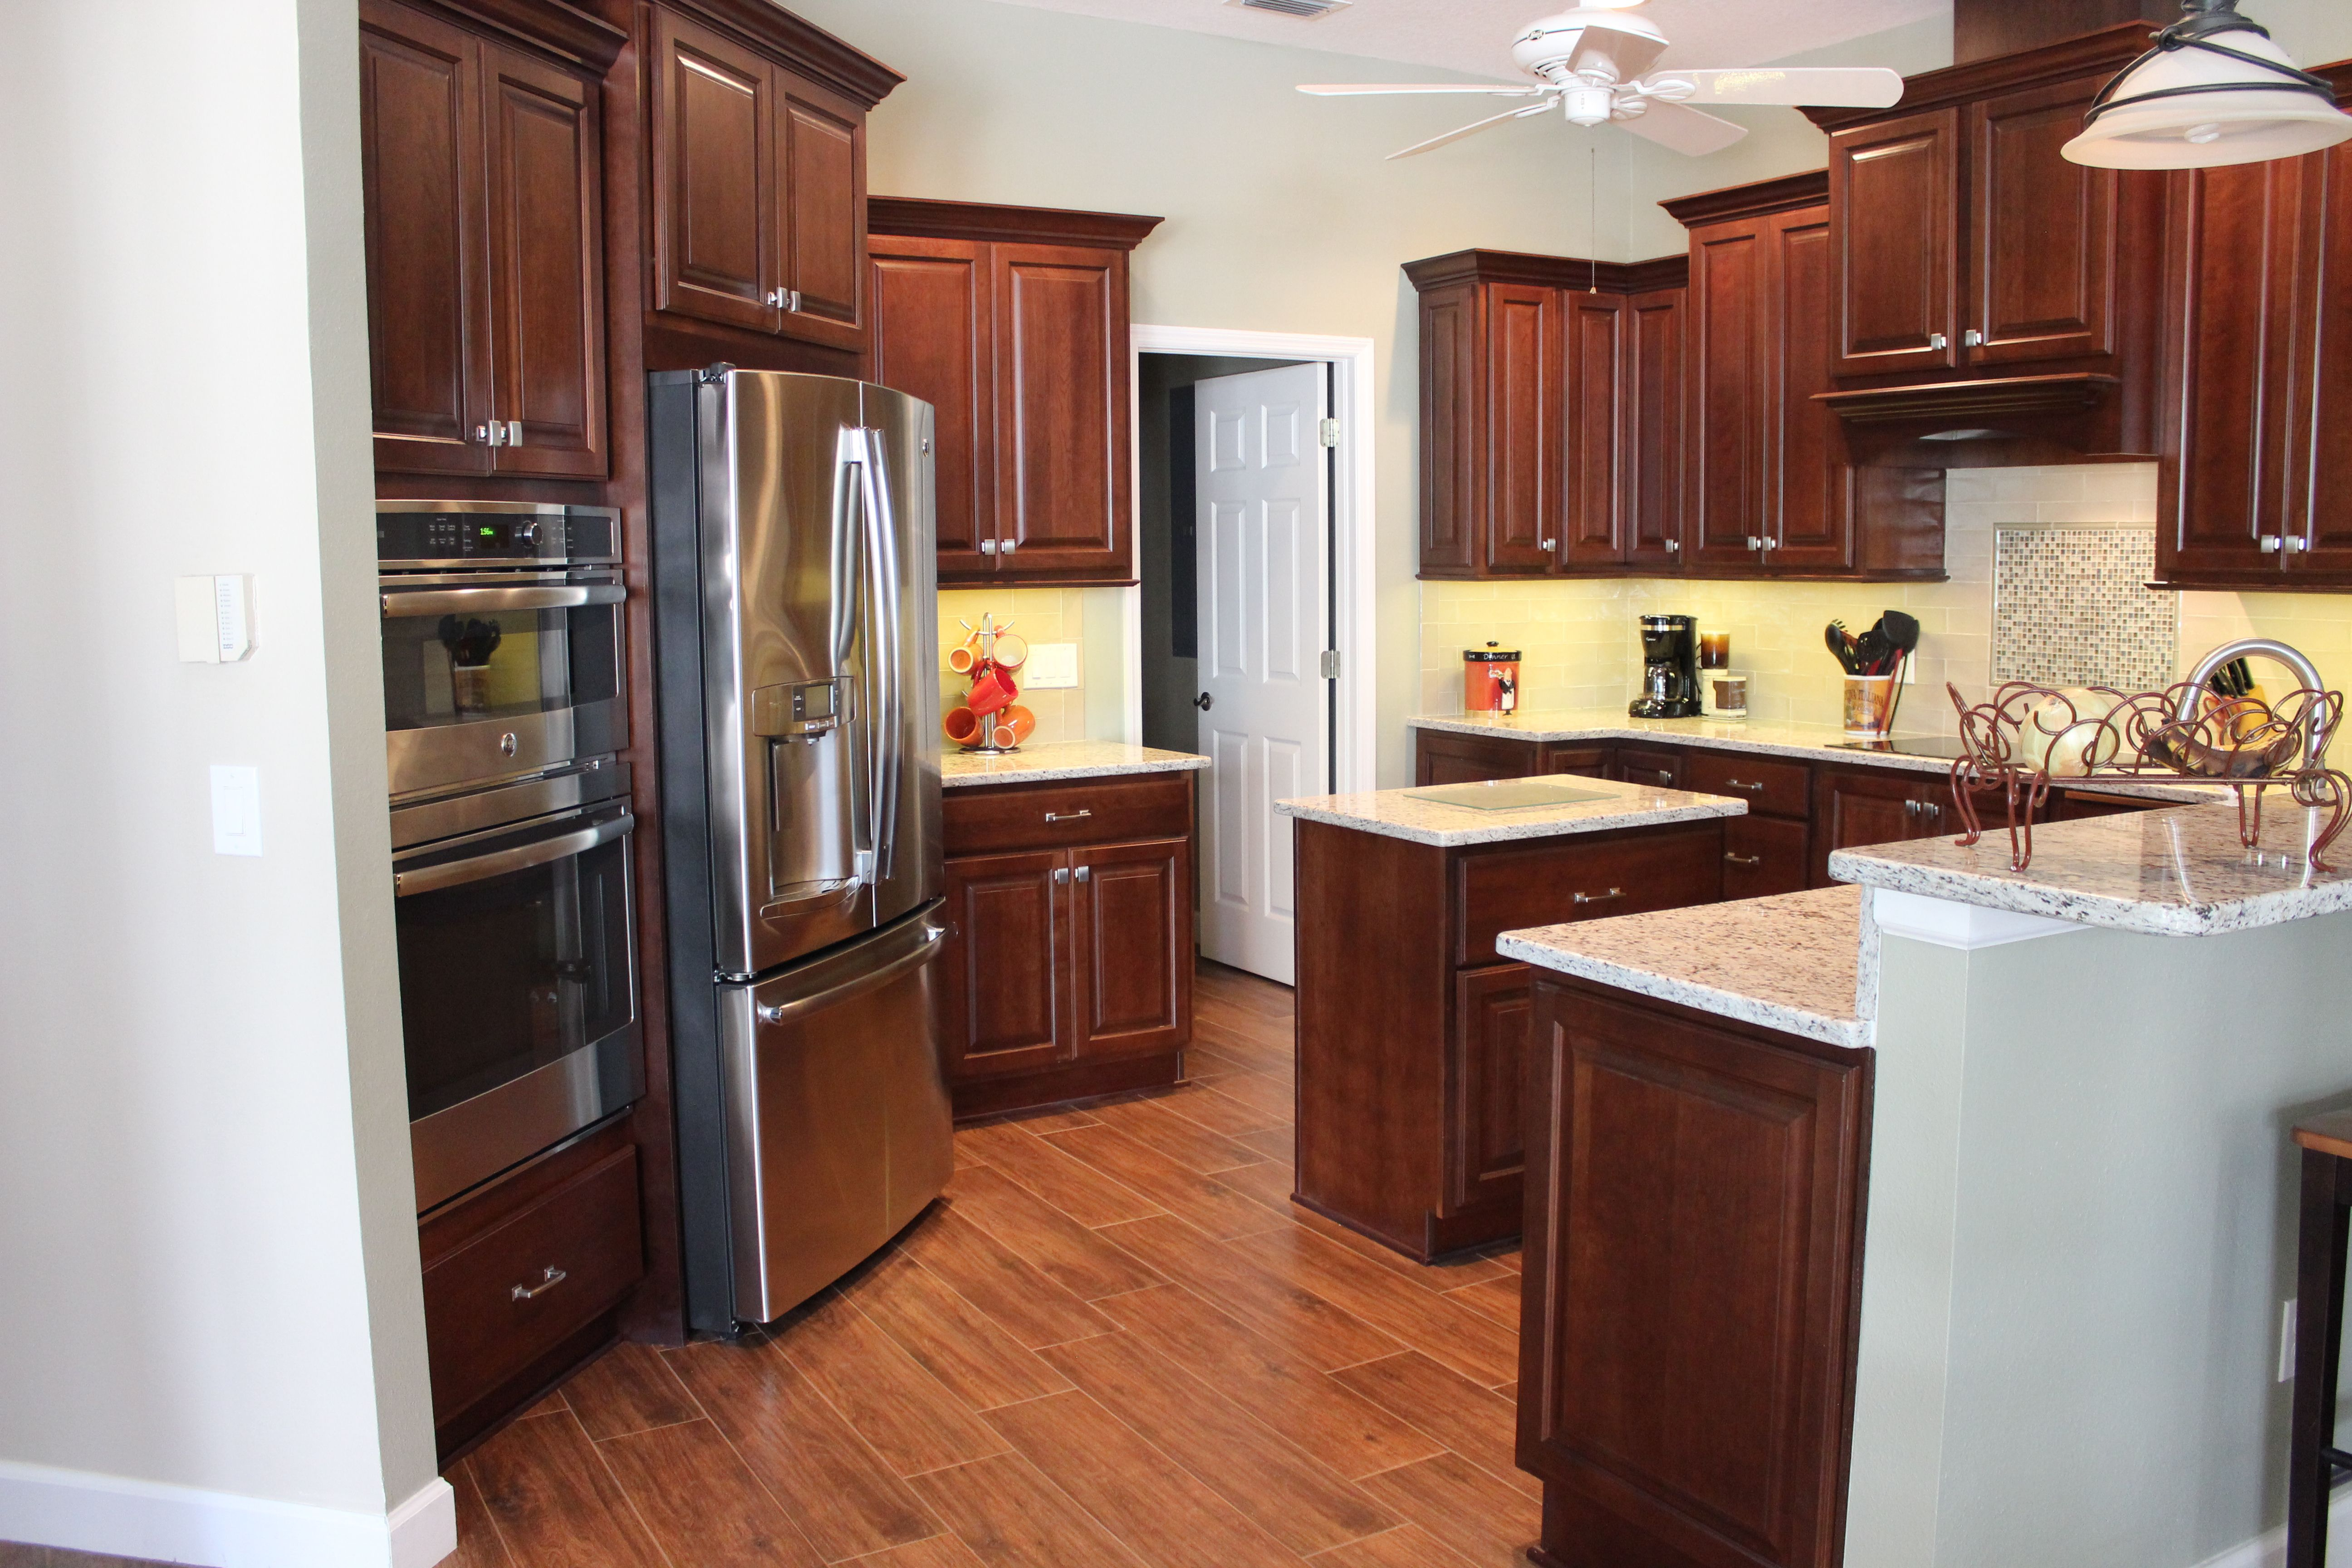 These Dark Wood Cabinets By Showplacecab Lend Such A Rich Look To This Kitchen With Granite Countertops S Wall Oven Kitchen Kitchen Kitchen Bathroom Remodel